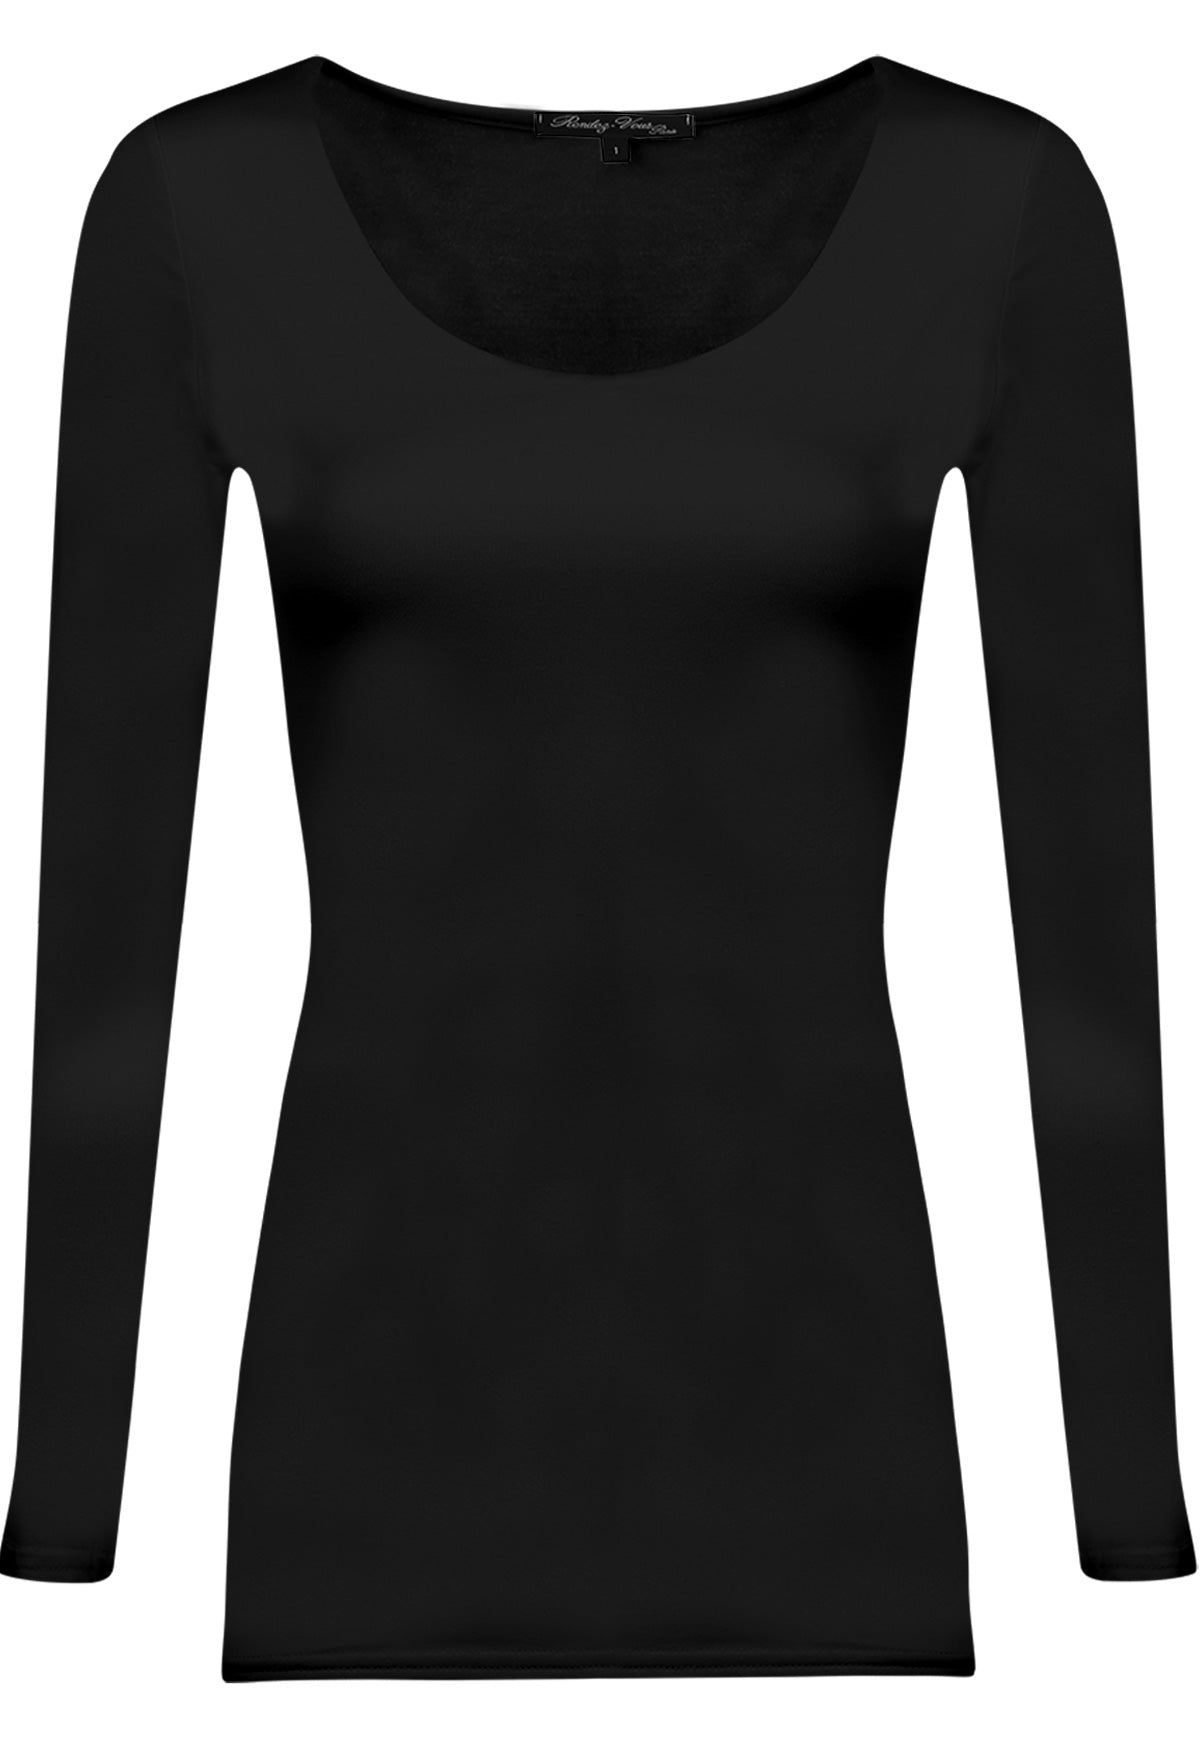 ZAZA Scoop Neck Long length  Tshirt Black